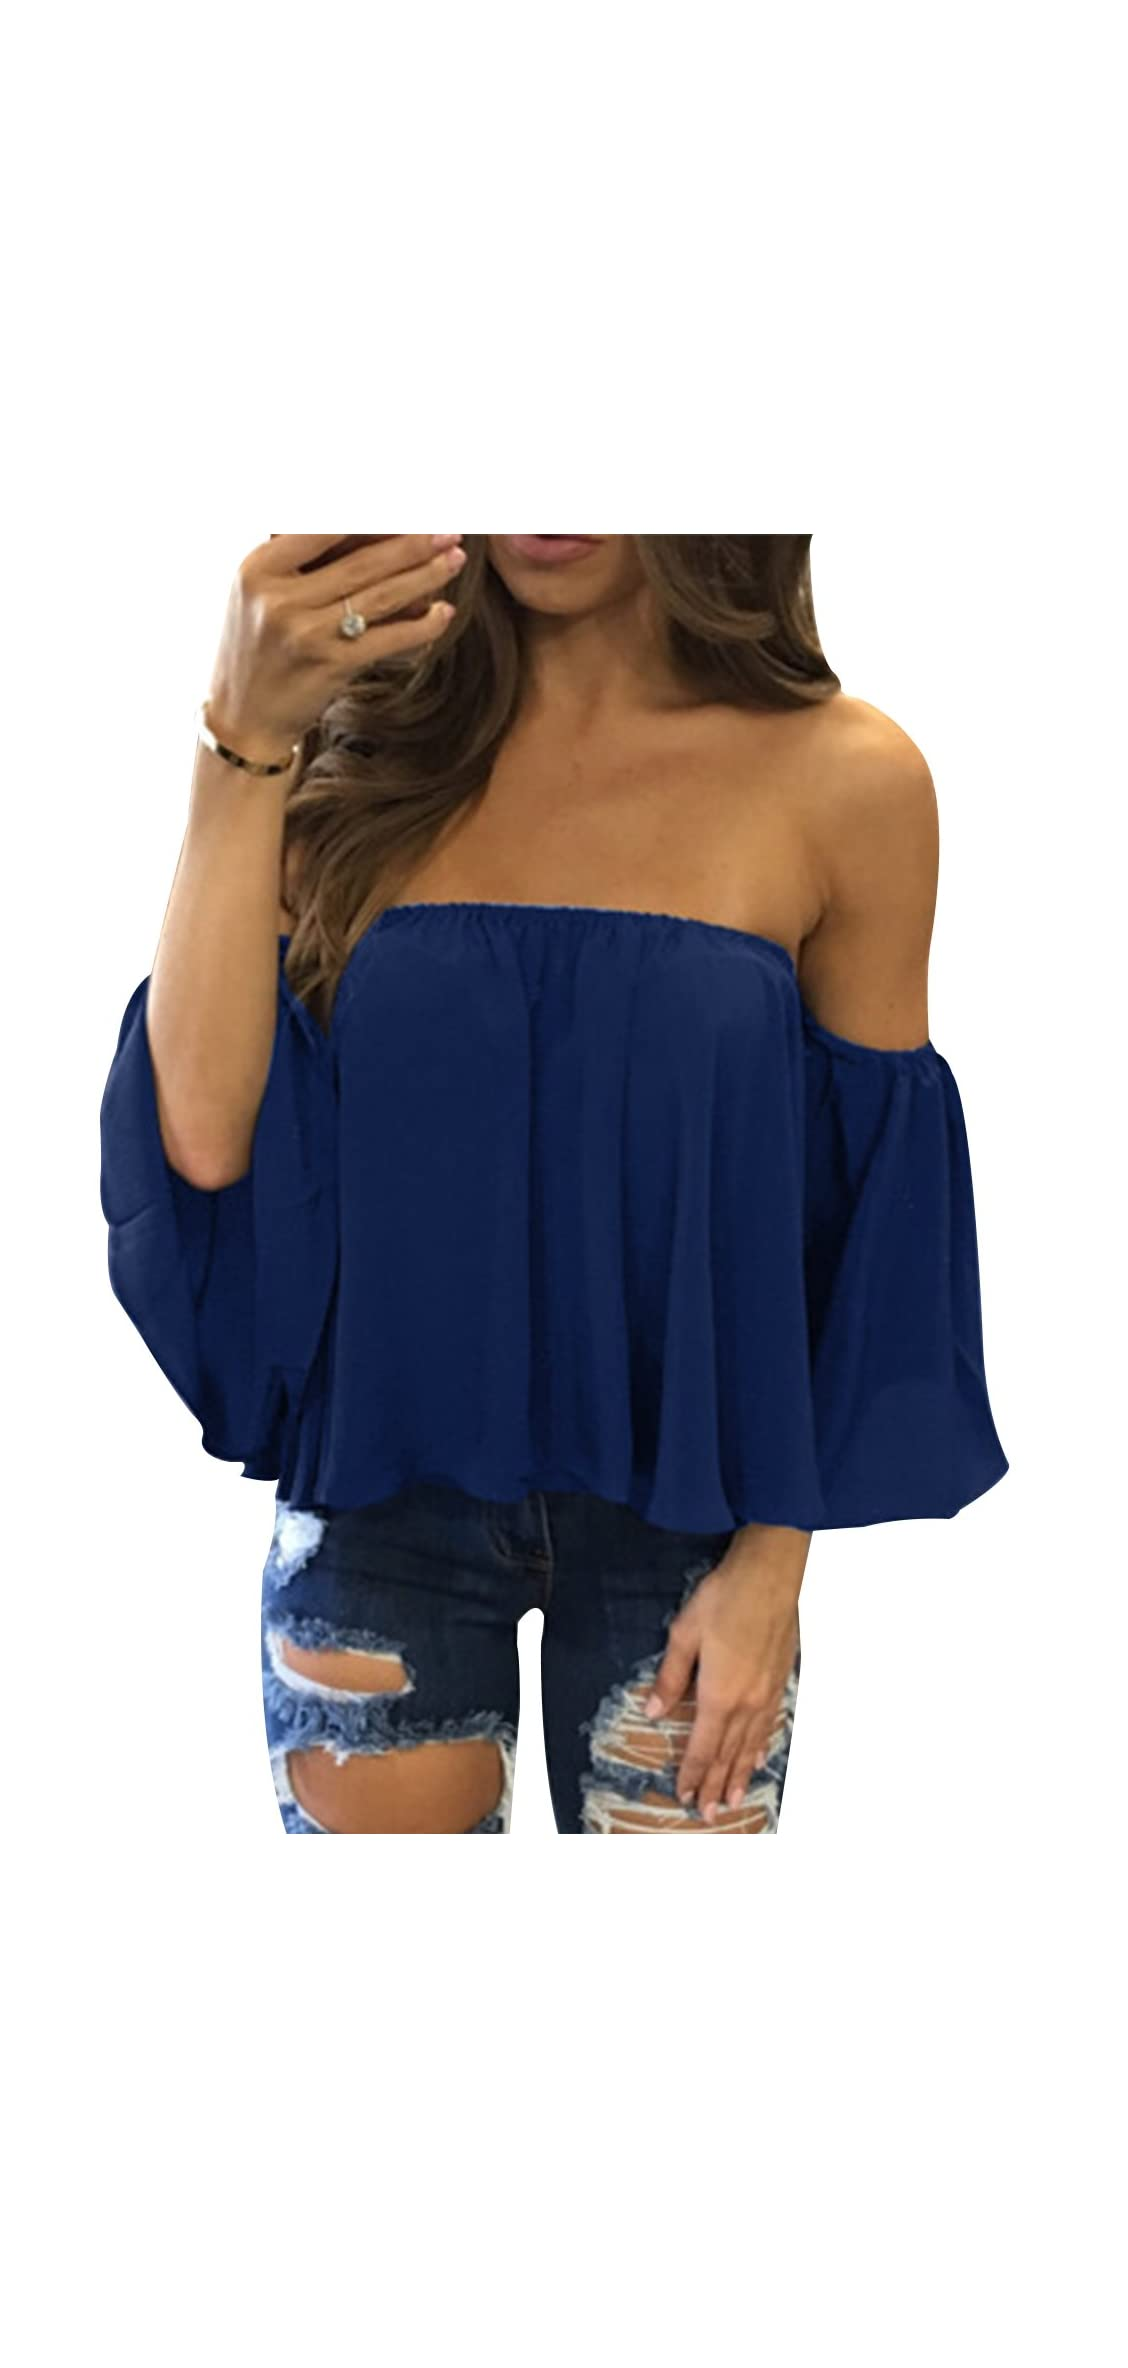 Women's Summer Off Shoulder Blouses Short Sleeves Sexy Tops T